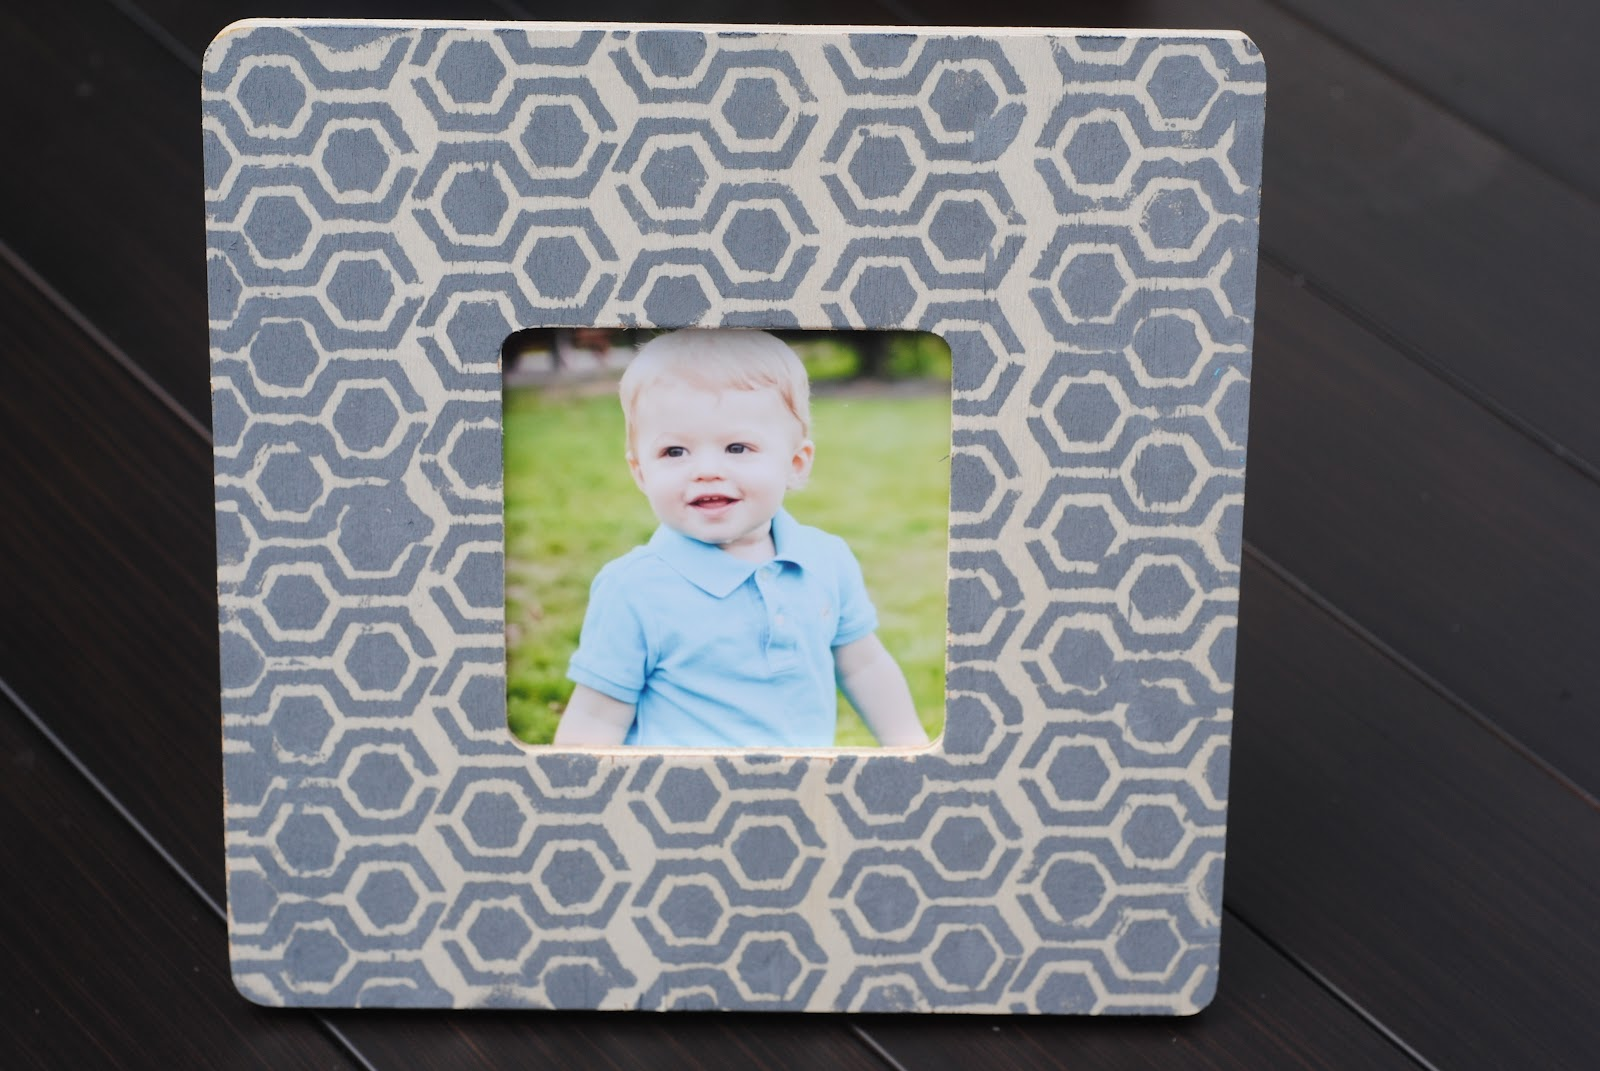 5 ways to decorate a craft frame kids craft ideas making lemonade craft idea 4 stenciled frame jeuxipadfo Image collections